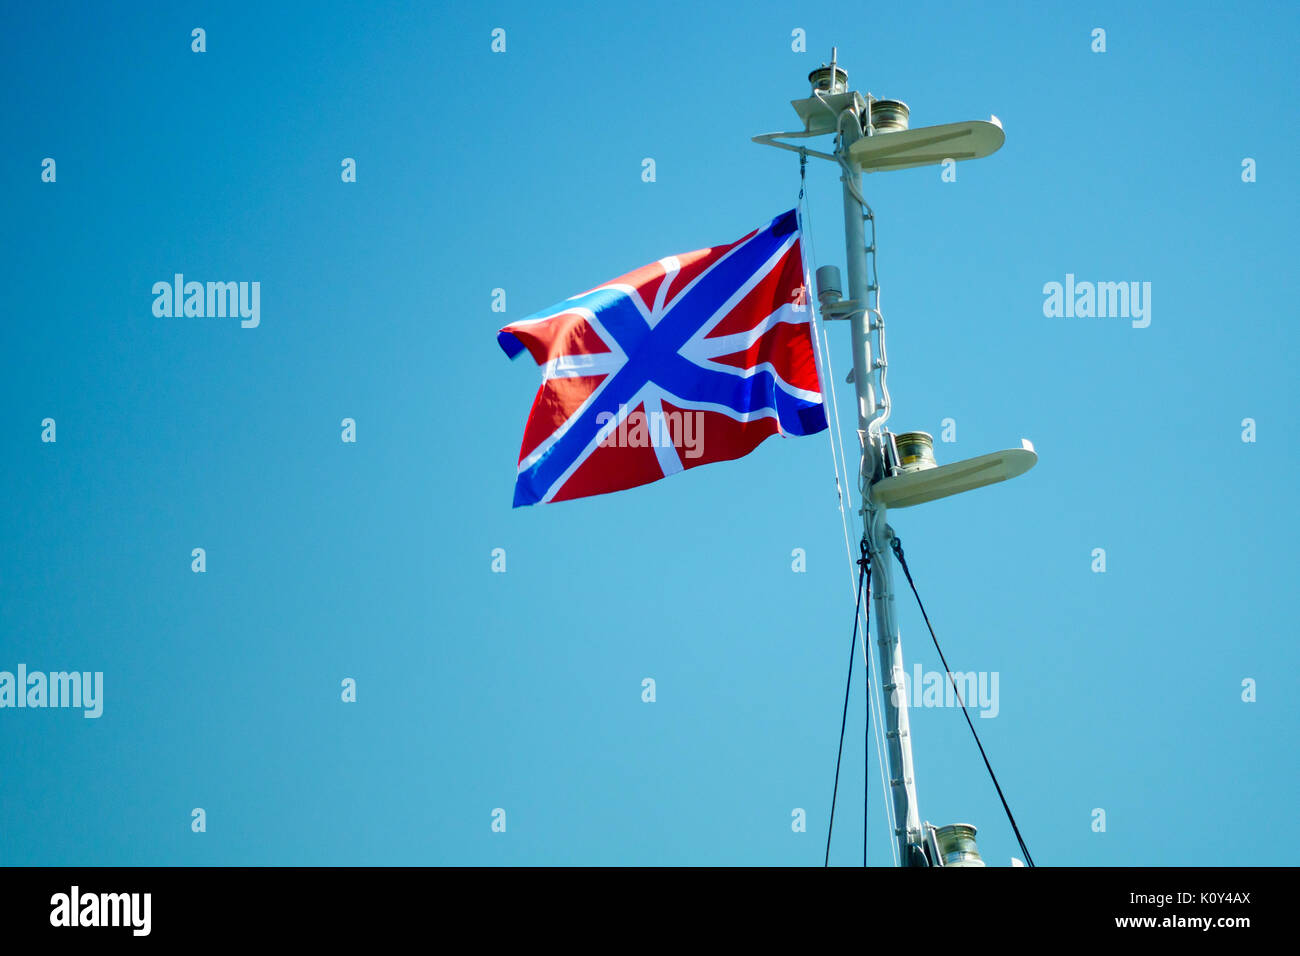 russian flag ship stock photos u0026 russian flag ship stock images